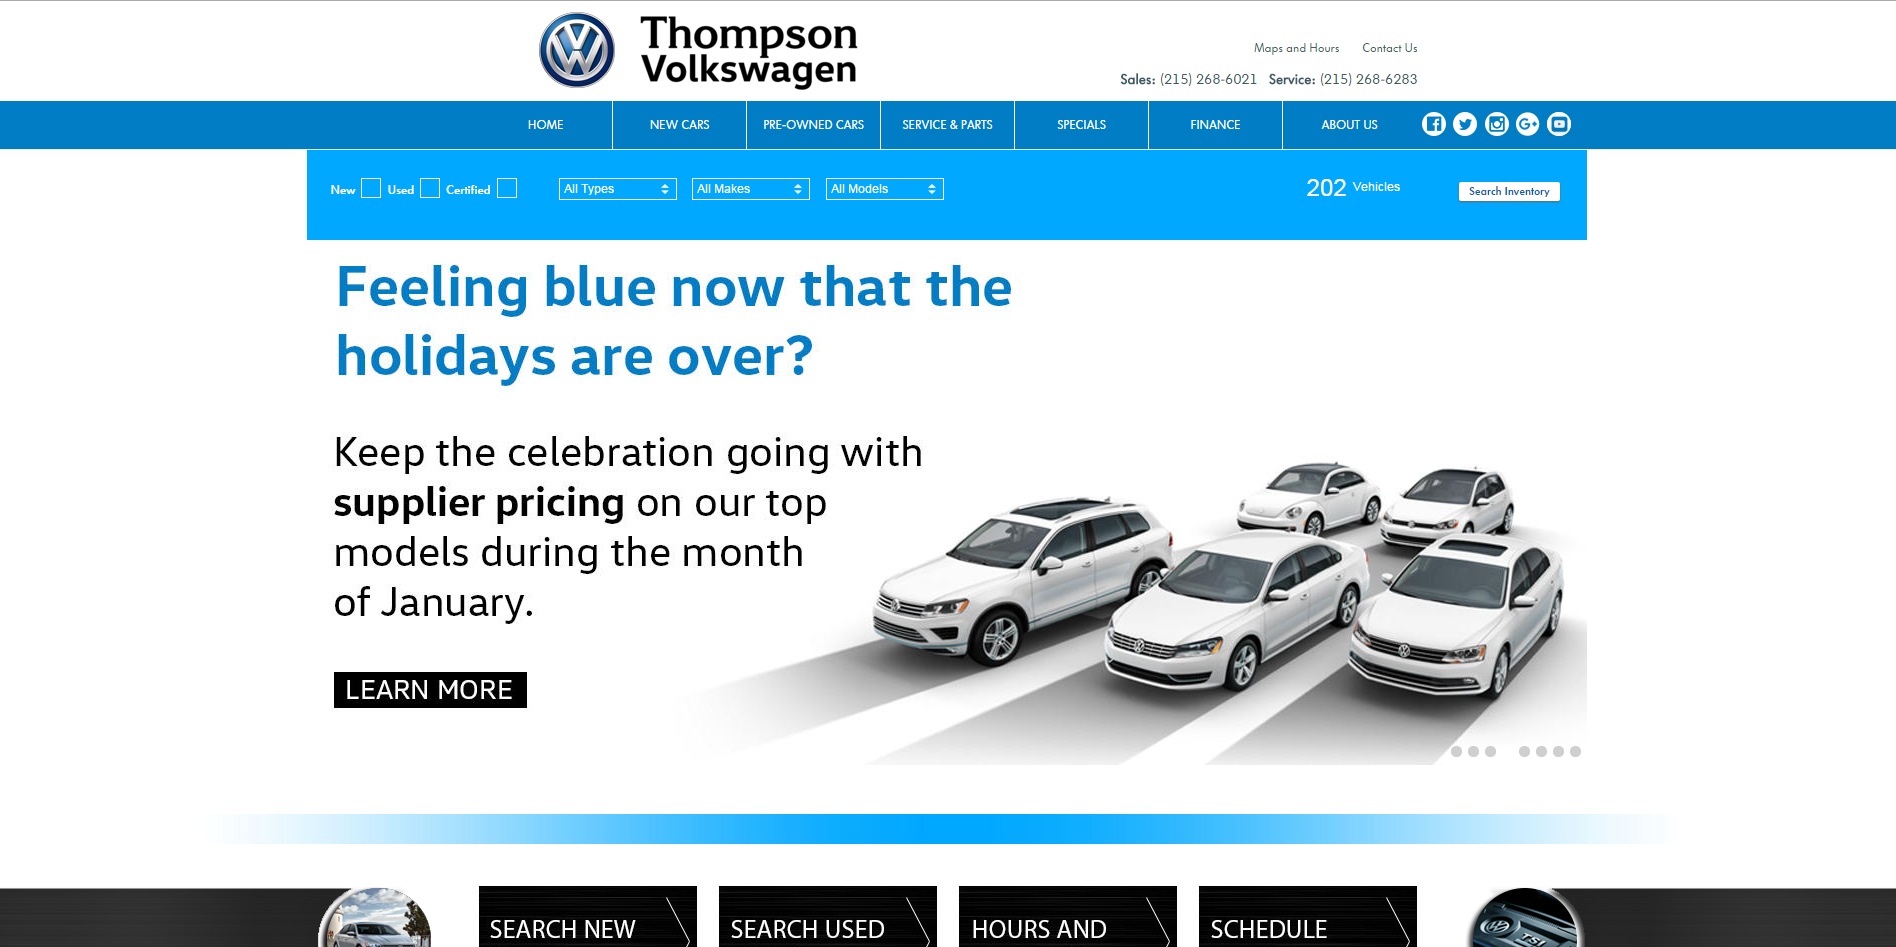 Thompson VW (After) 3.1